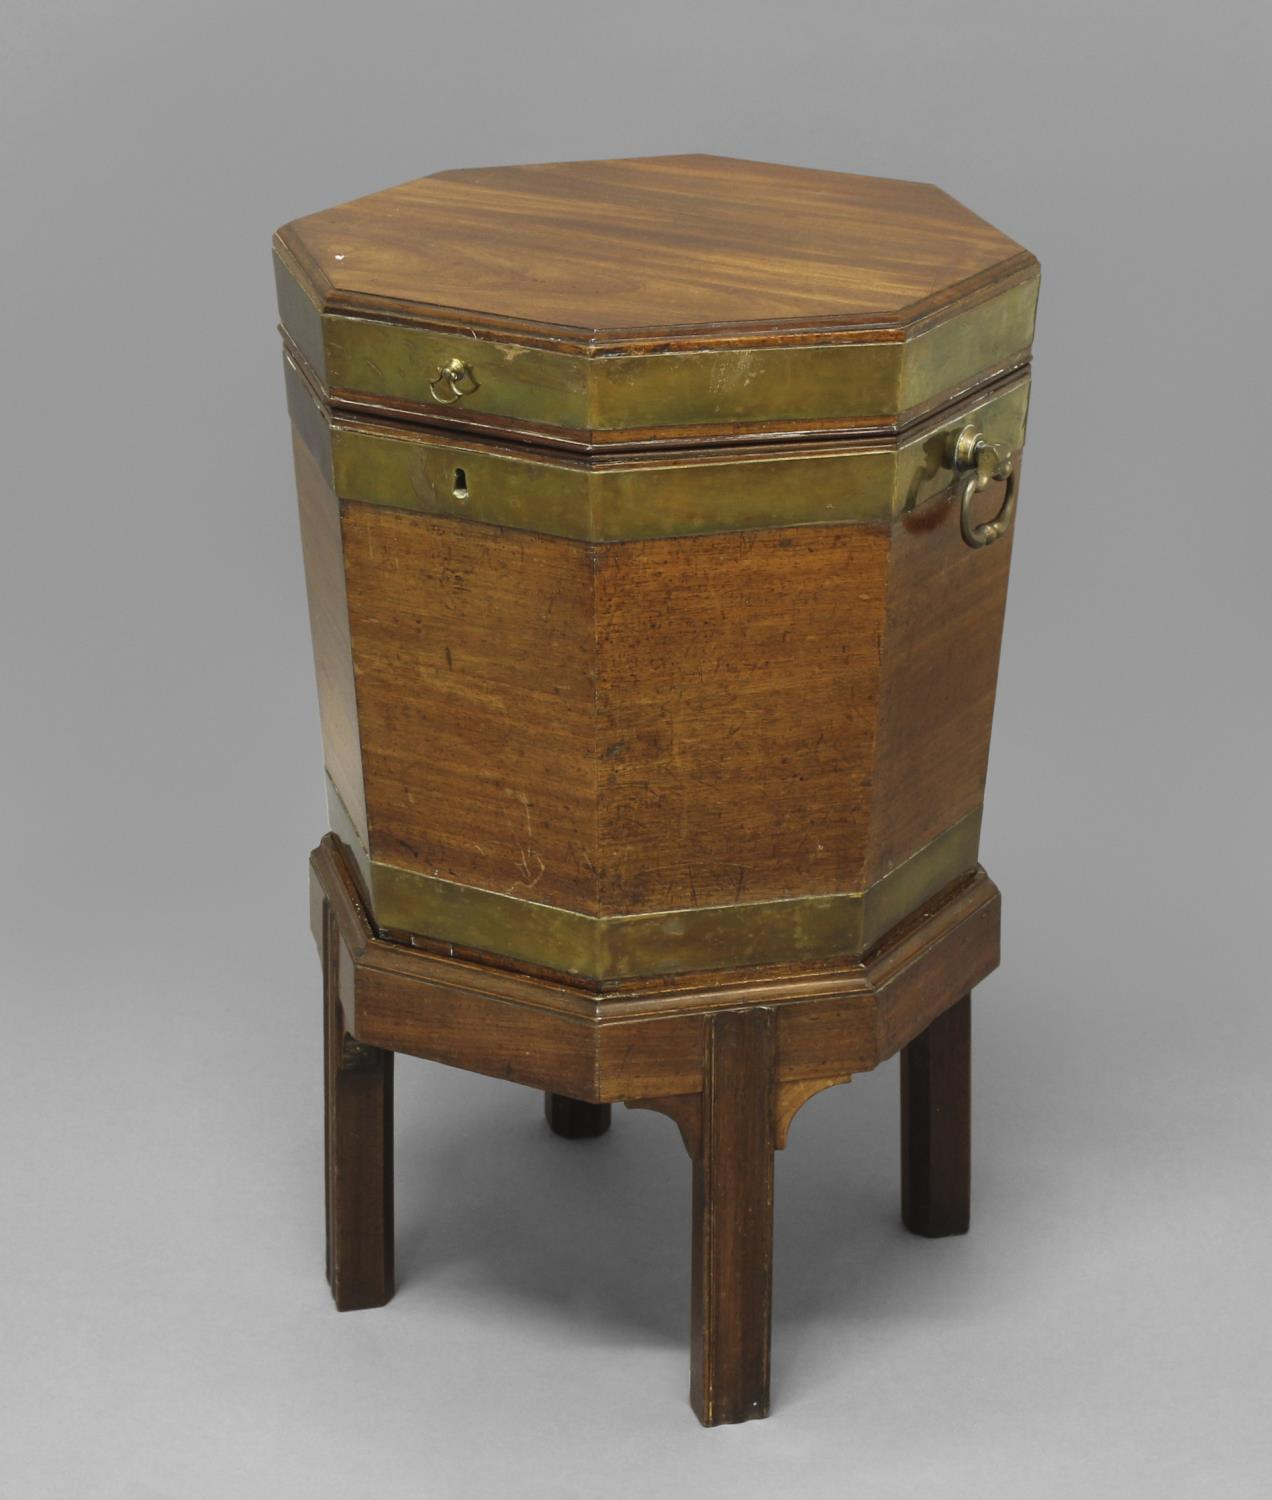 A GEORGE III BRASS BOUND MAHOGANY WINE COOLER ON STAND, of octagonal form with lead lined - Image 2 of 2